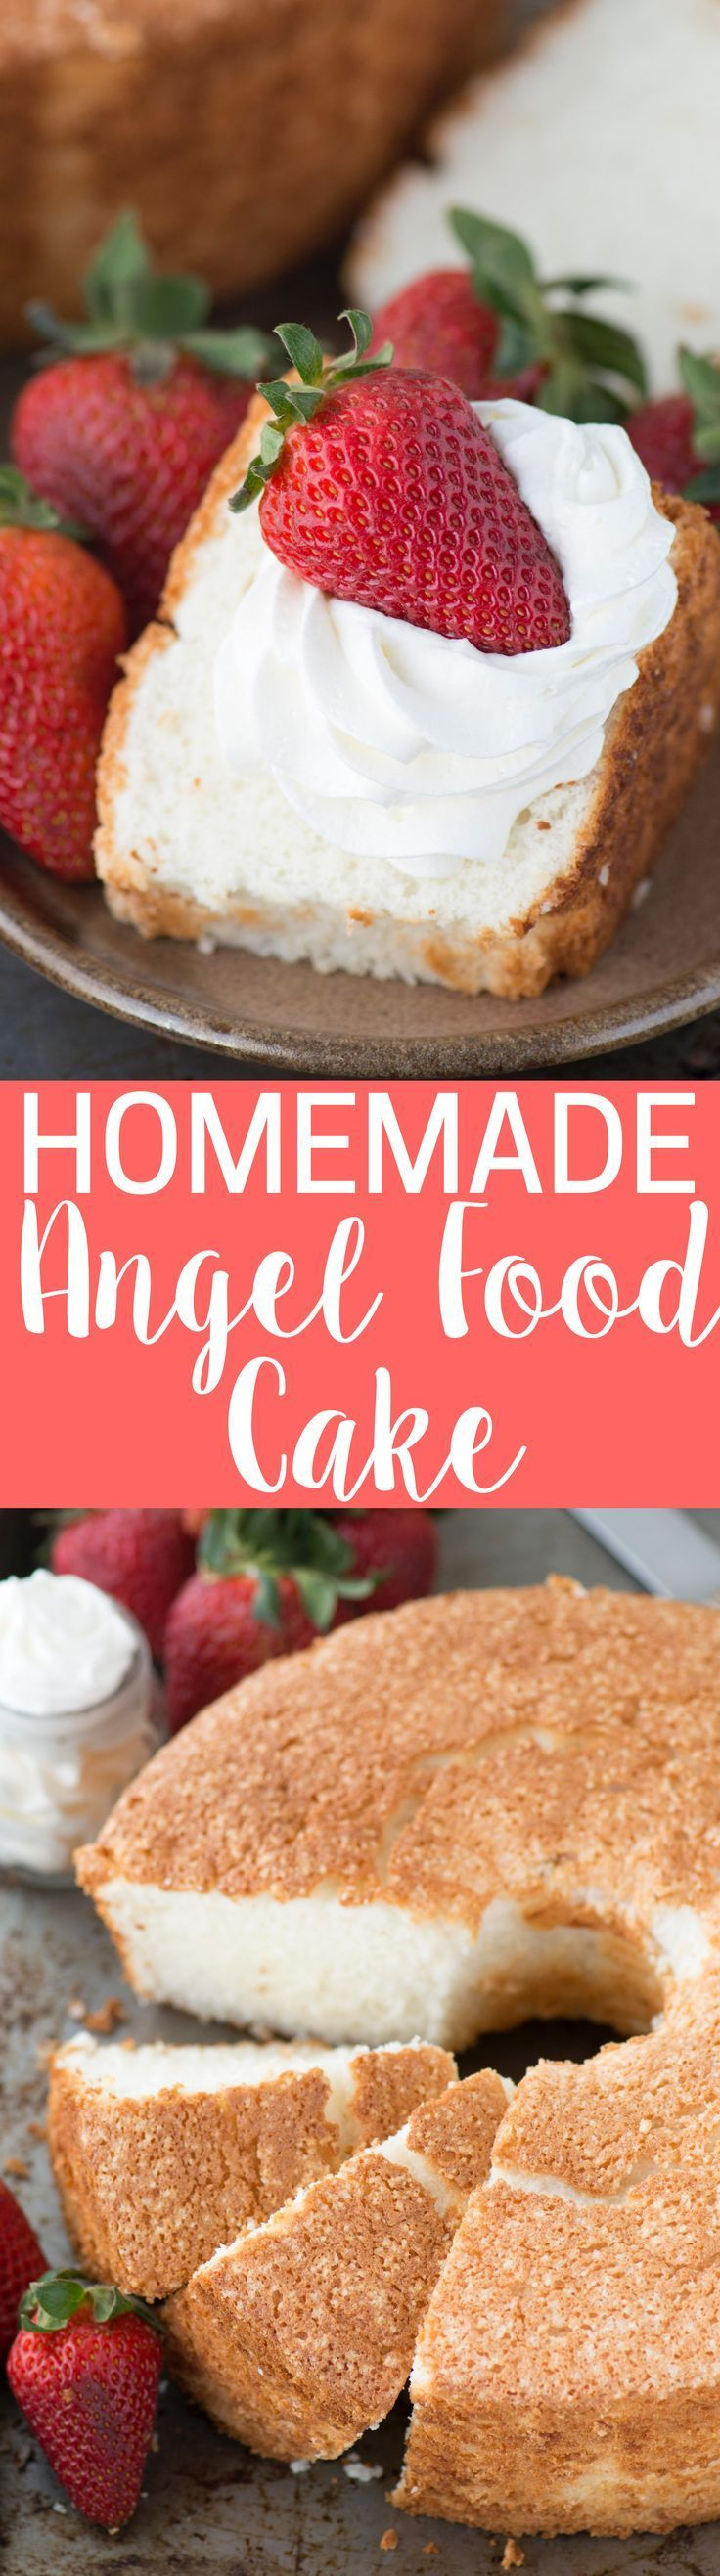 100 homemade angel food cake! This is the recipe that